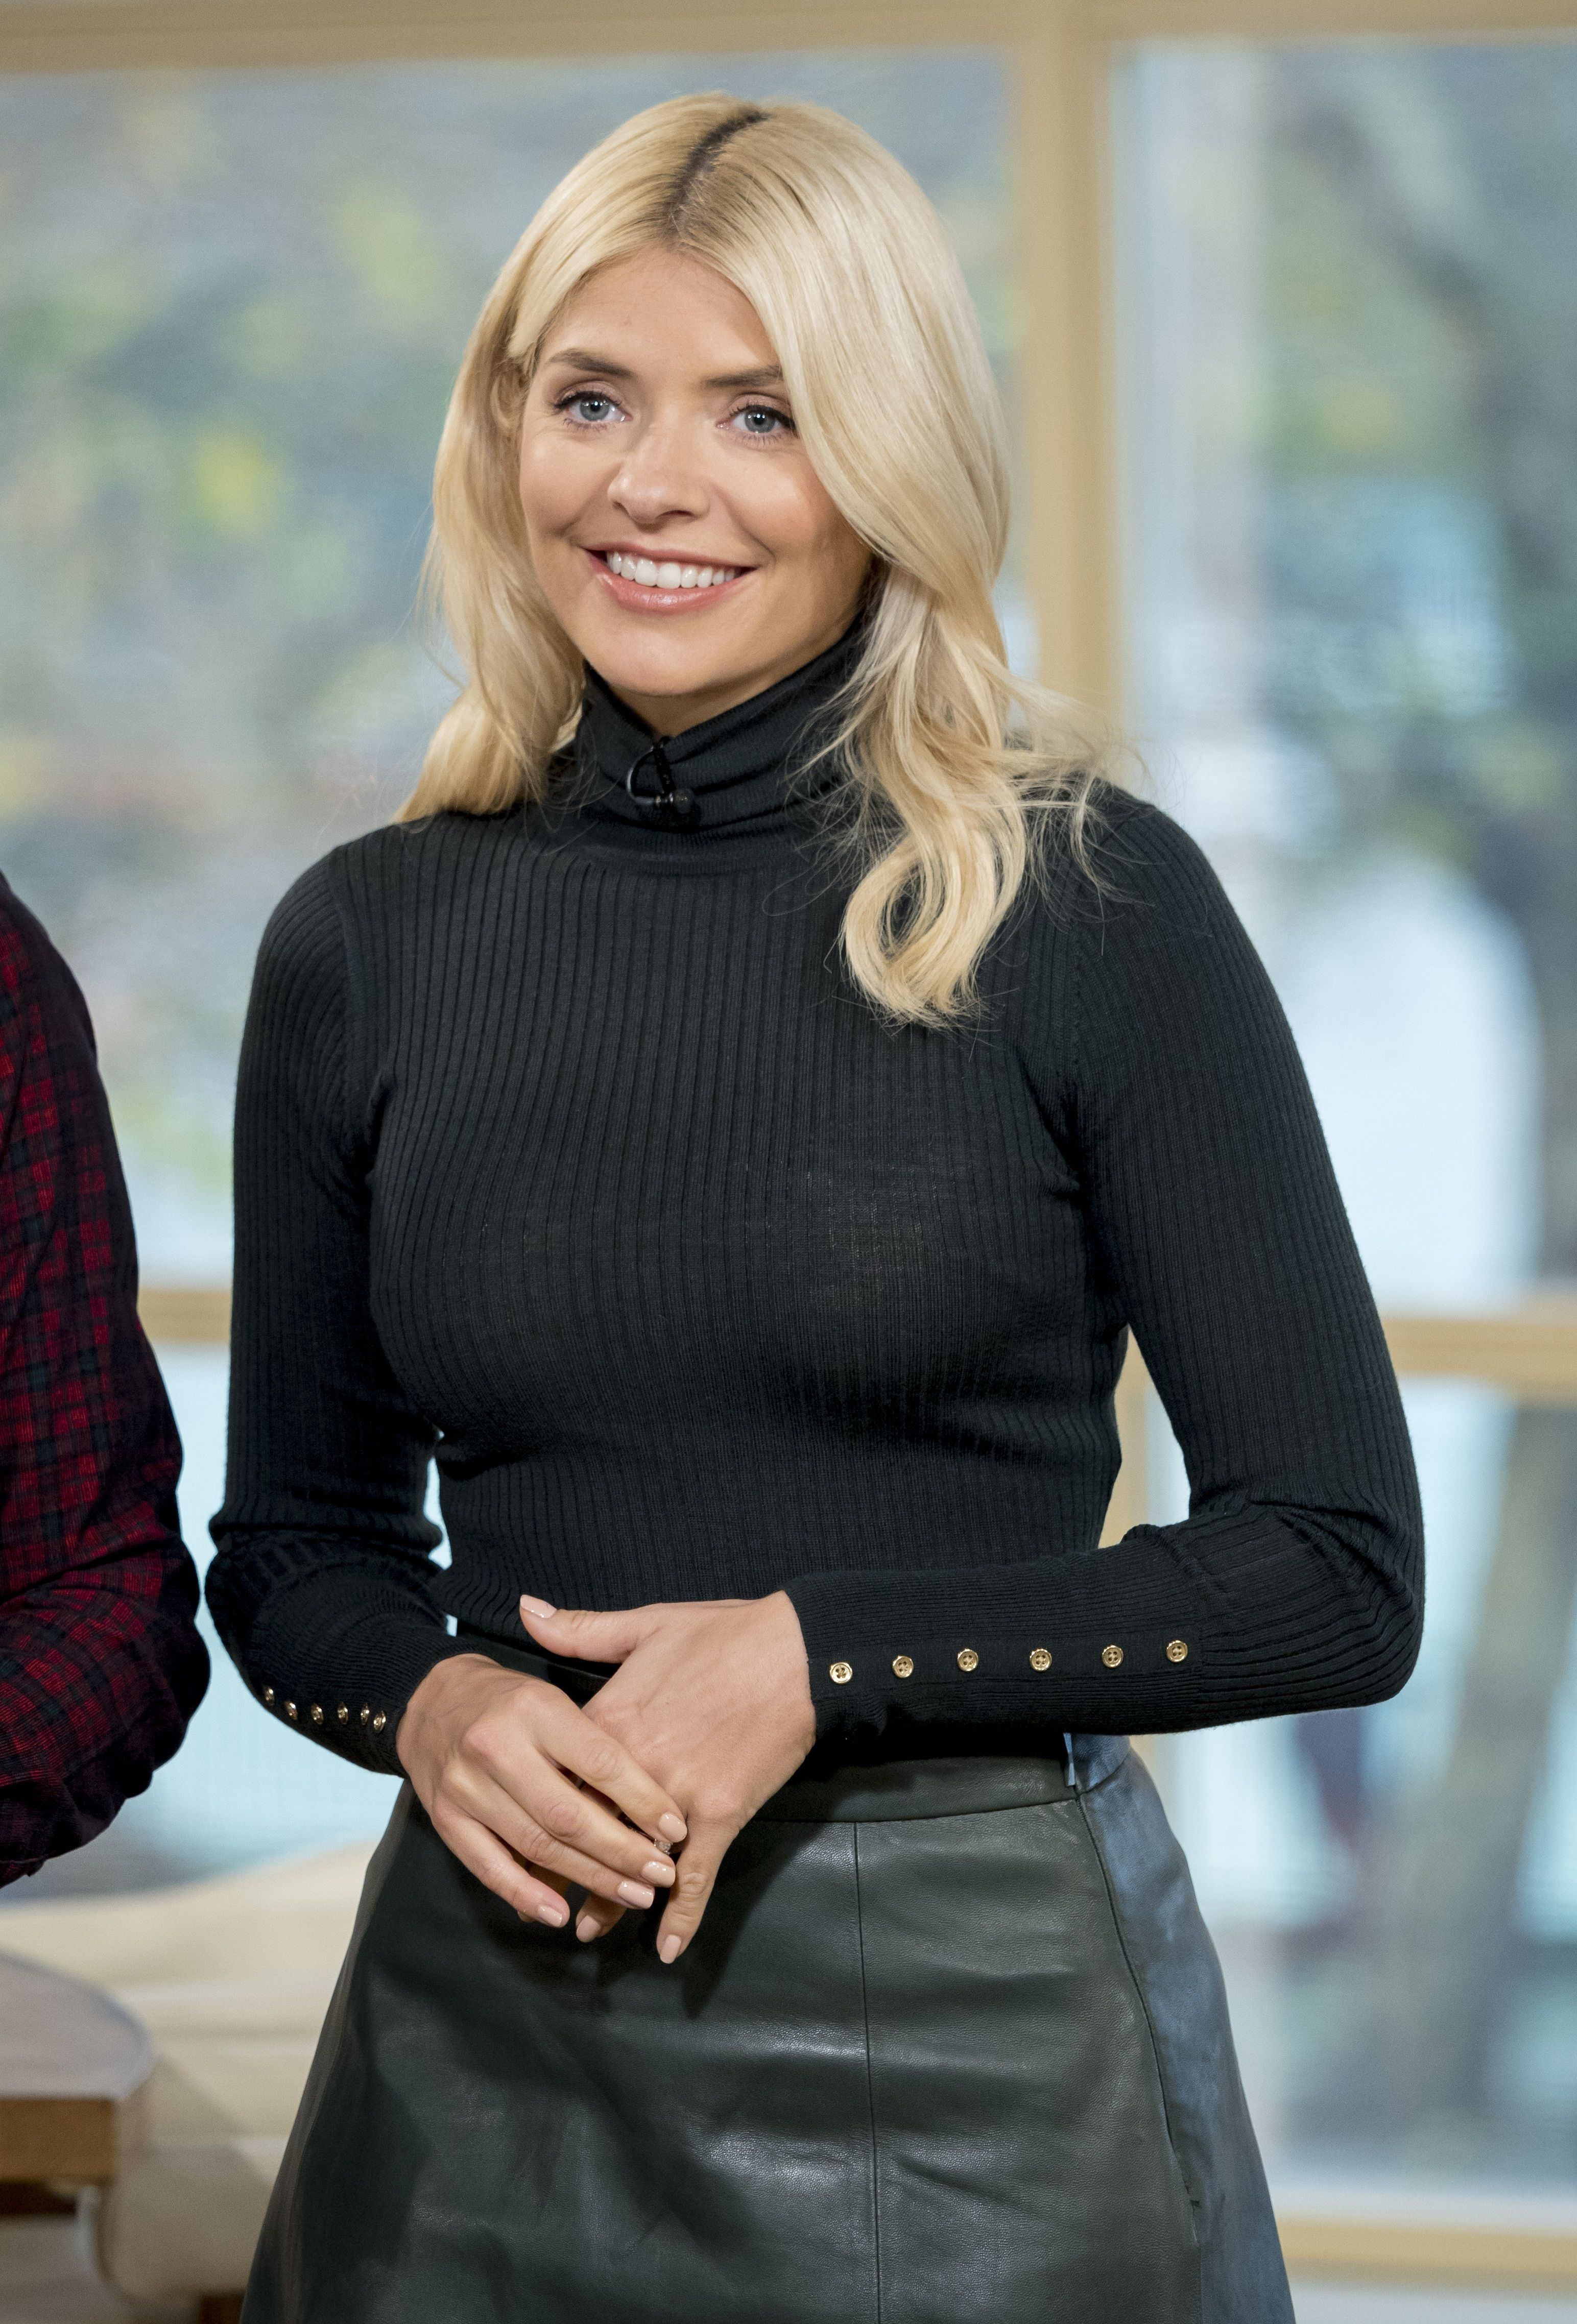 Holly Willoughby Furious' As Her Pictures Used To Promote Weight Loss Product Holly Willoughby Furious' As Her Pictures Used To Promote Weight Loss Product new pictures